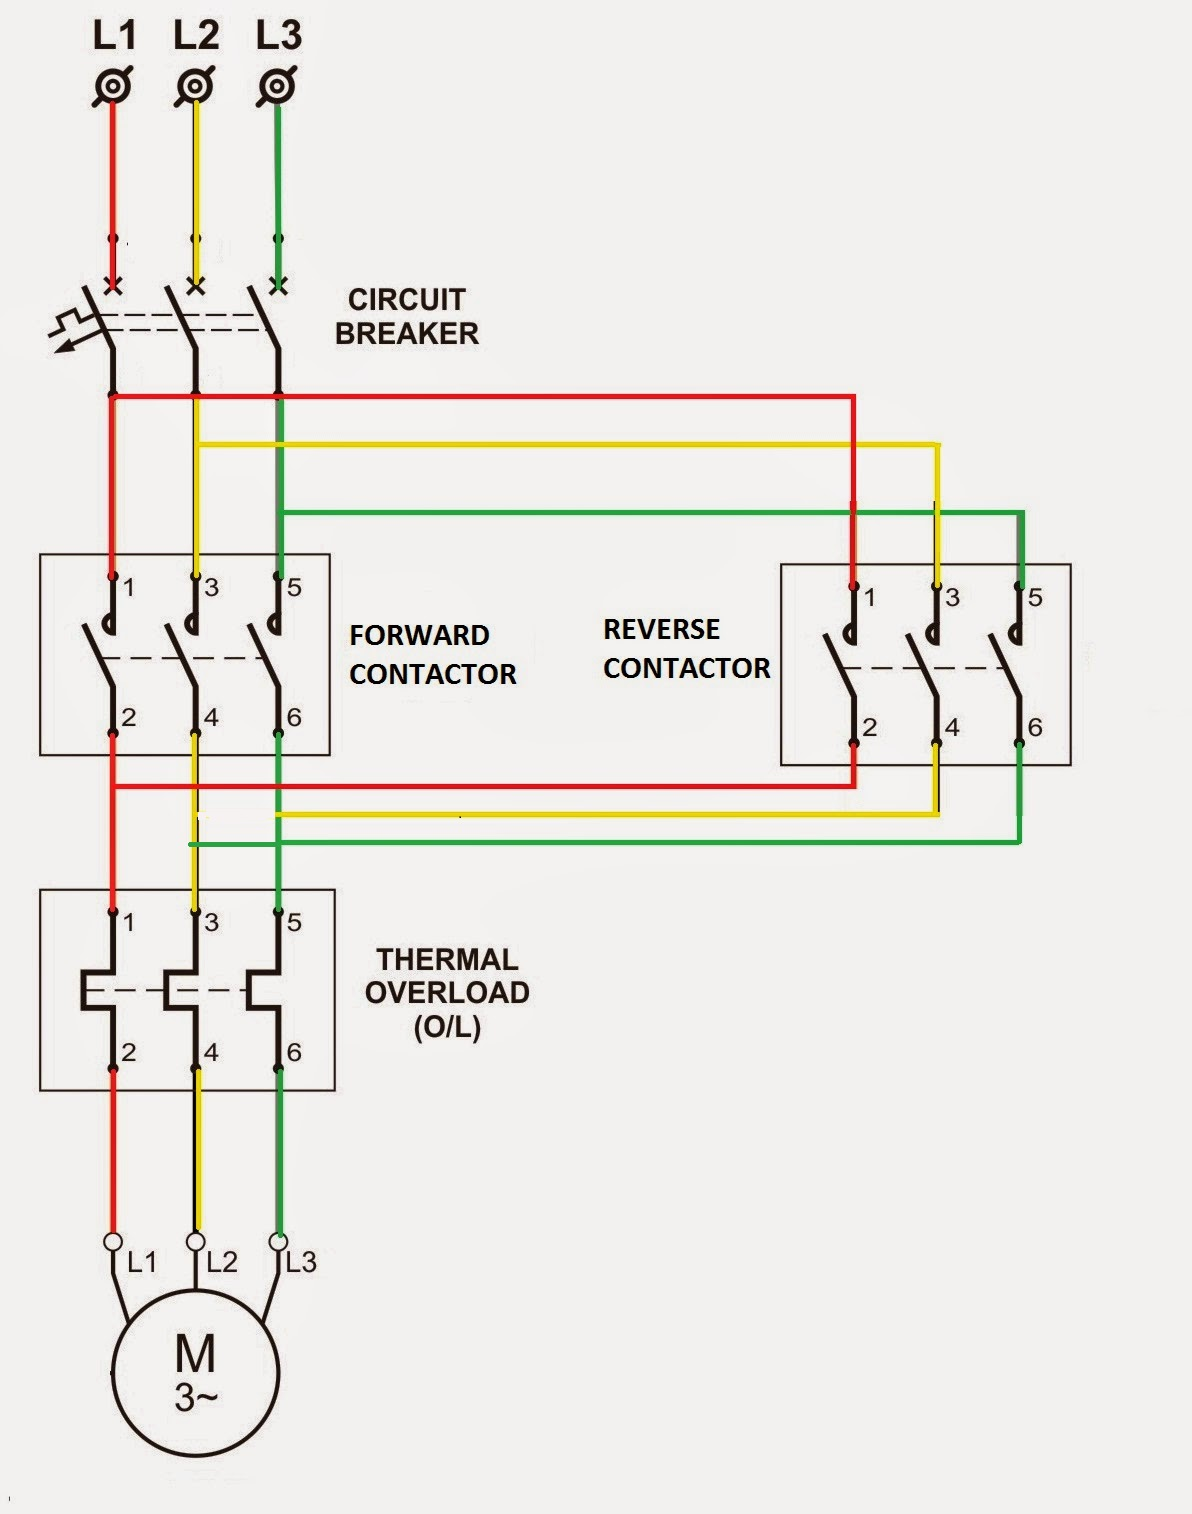 Dol contactor wiring diagram custom wiring diagram electrical standards direct online applications reverse forward rh electrialstandards blogspot com direct online starter wiring diagram asfbconference2016